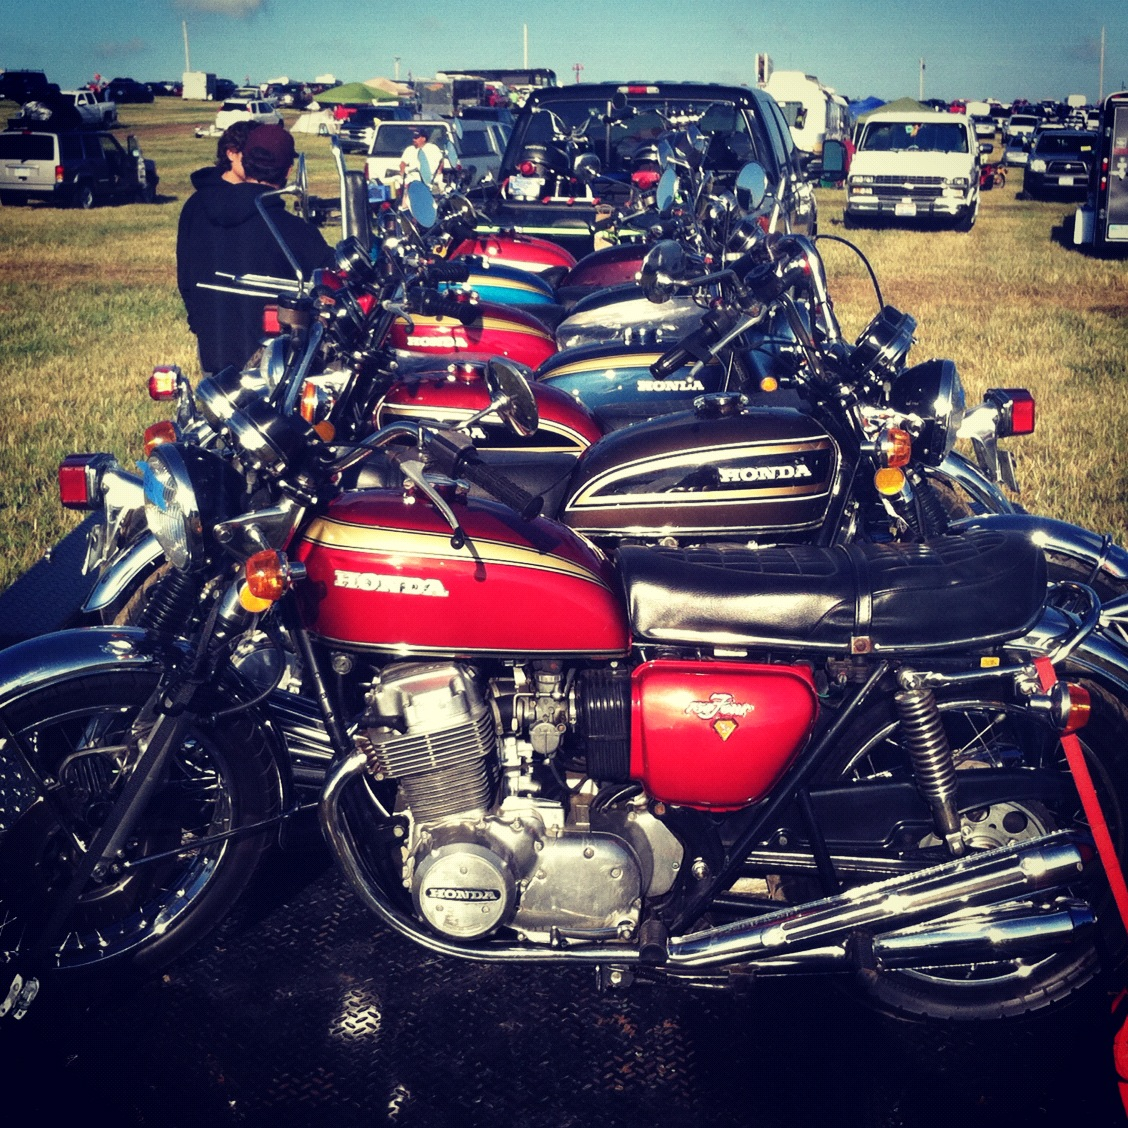 Don't Ask Me: Field Report: Vintage Motorcycle Days